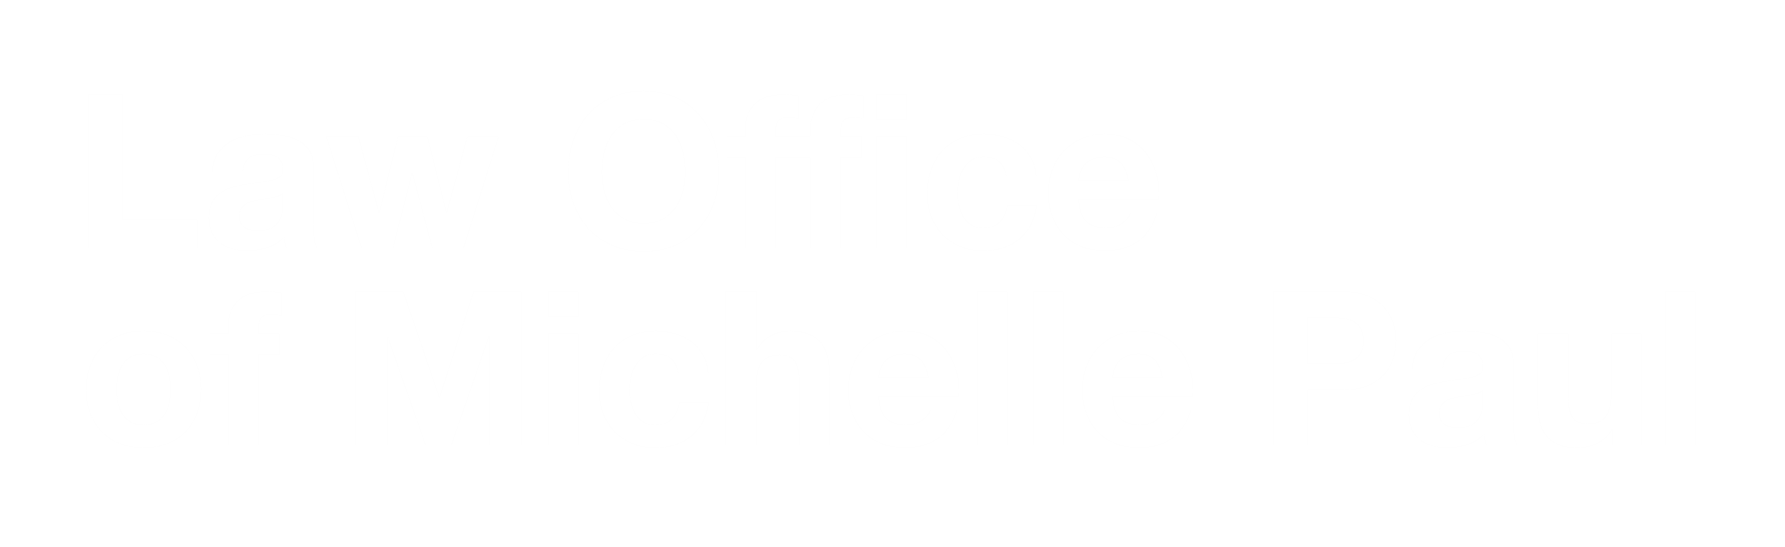 law office of michelle paul logo